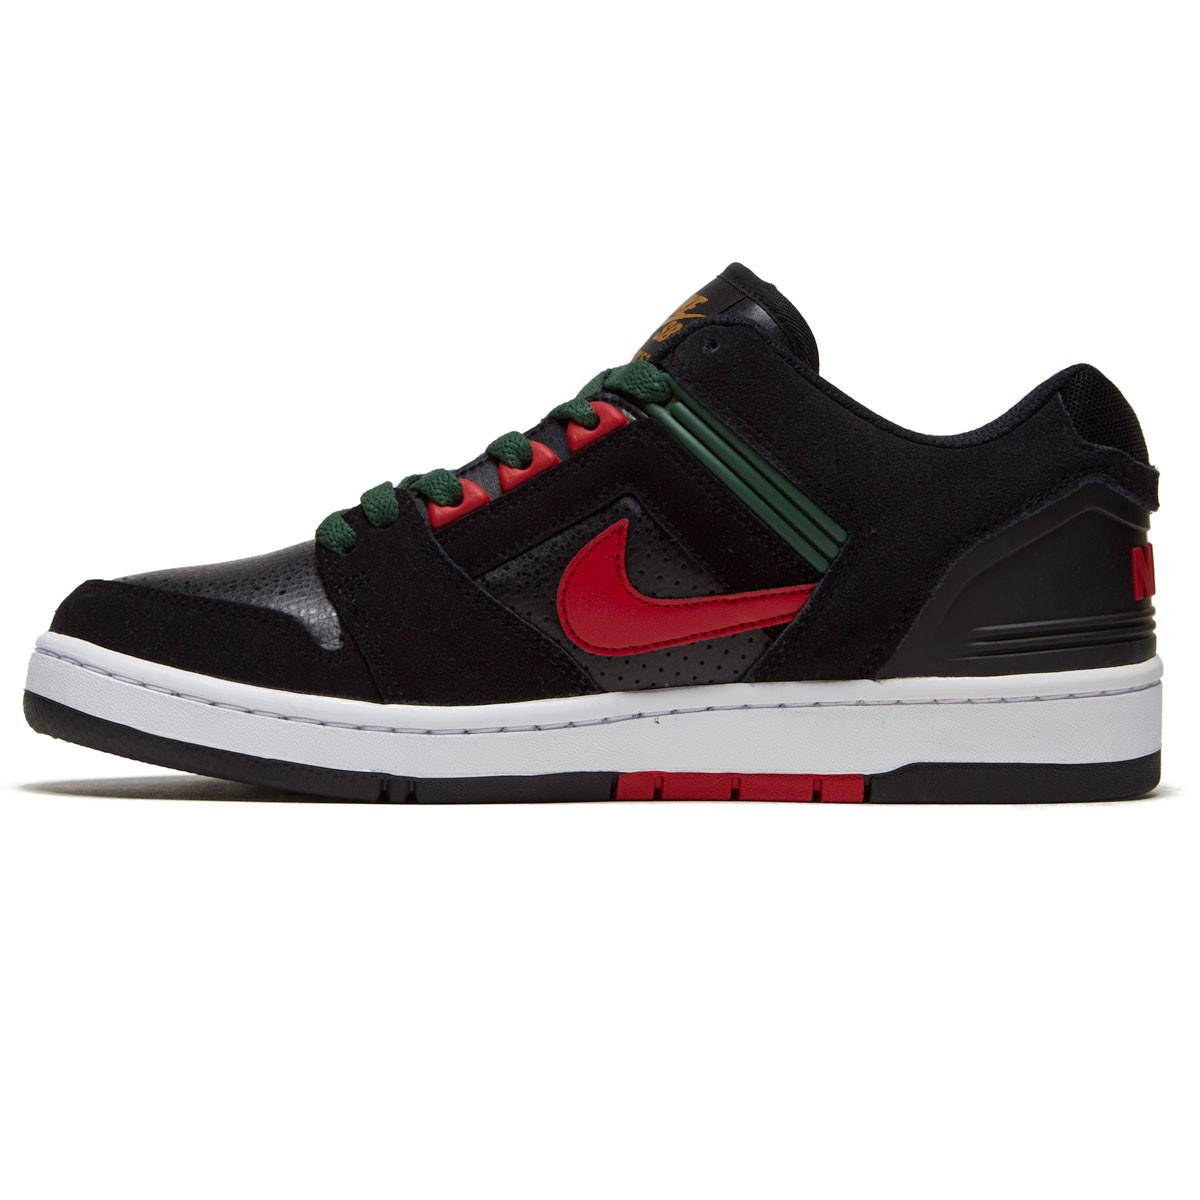 Nike Herren Sb Air Force Ii Low Sneakers